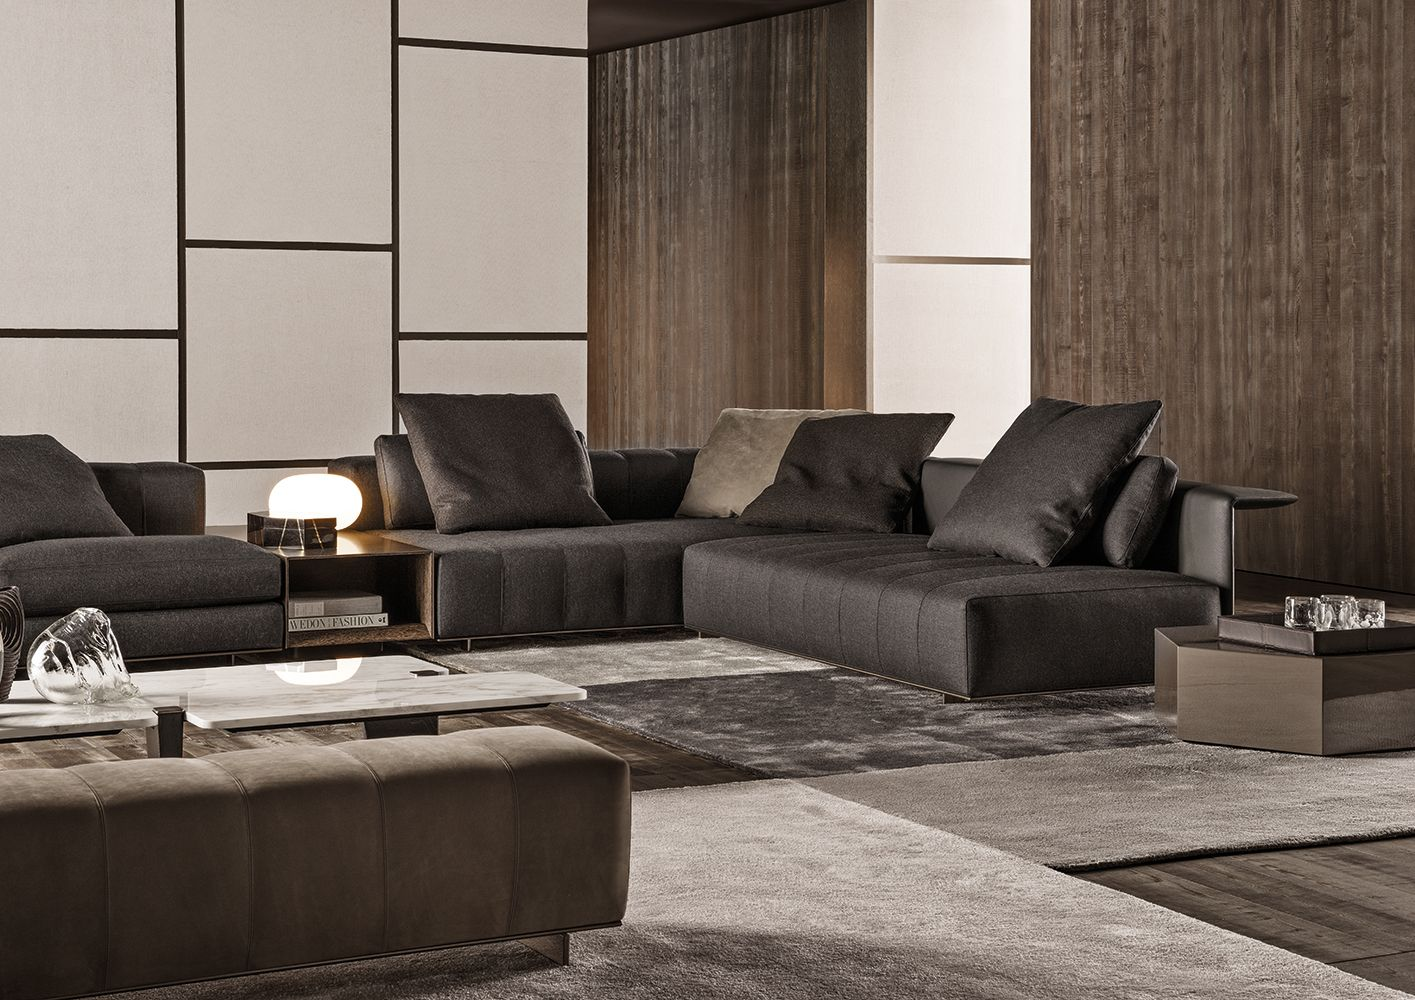 Photo of Smink | Art + Design furniture art products | Products | Sofas | Freeman Seating